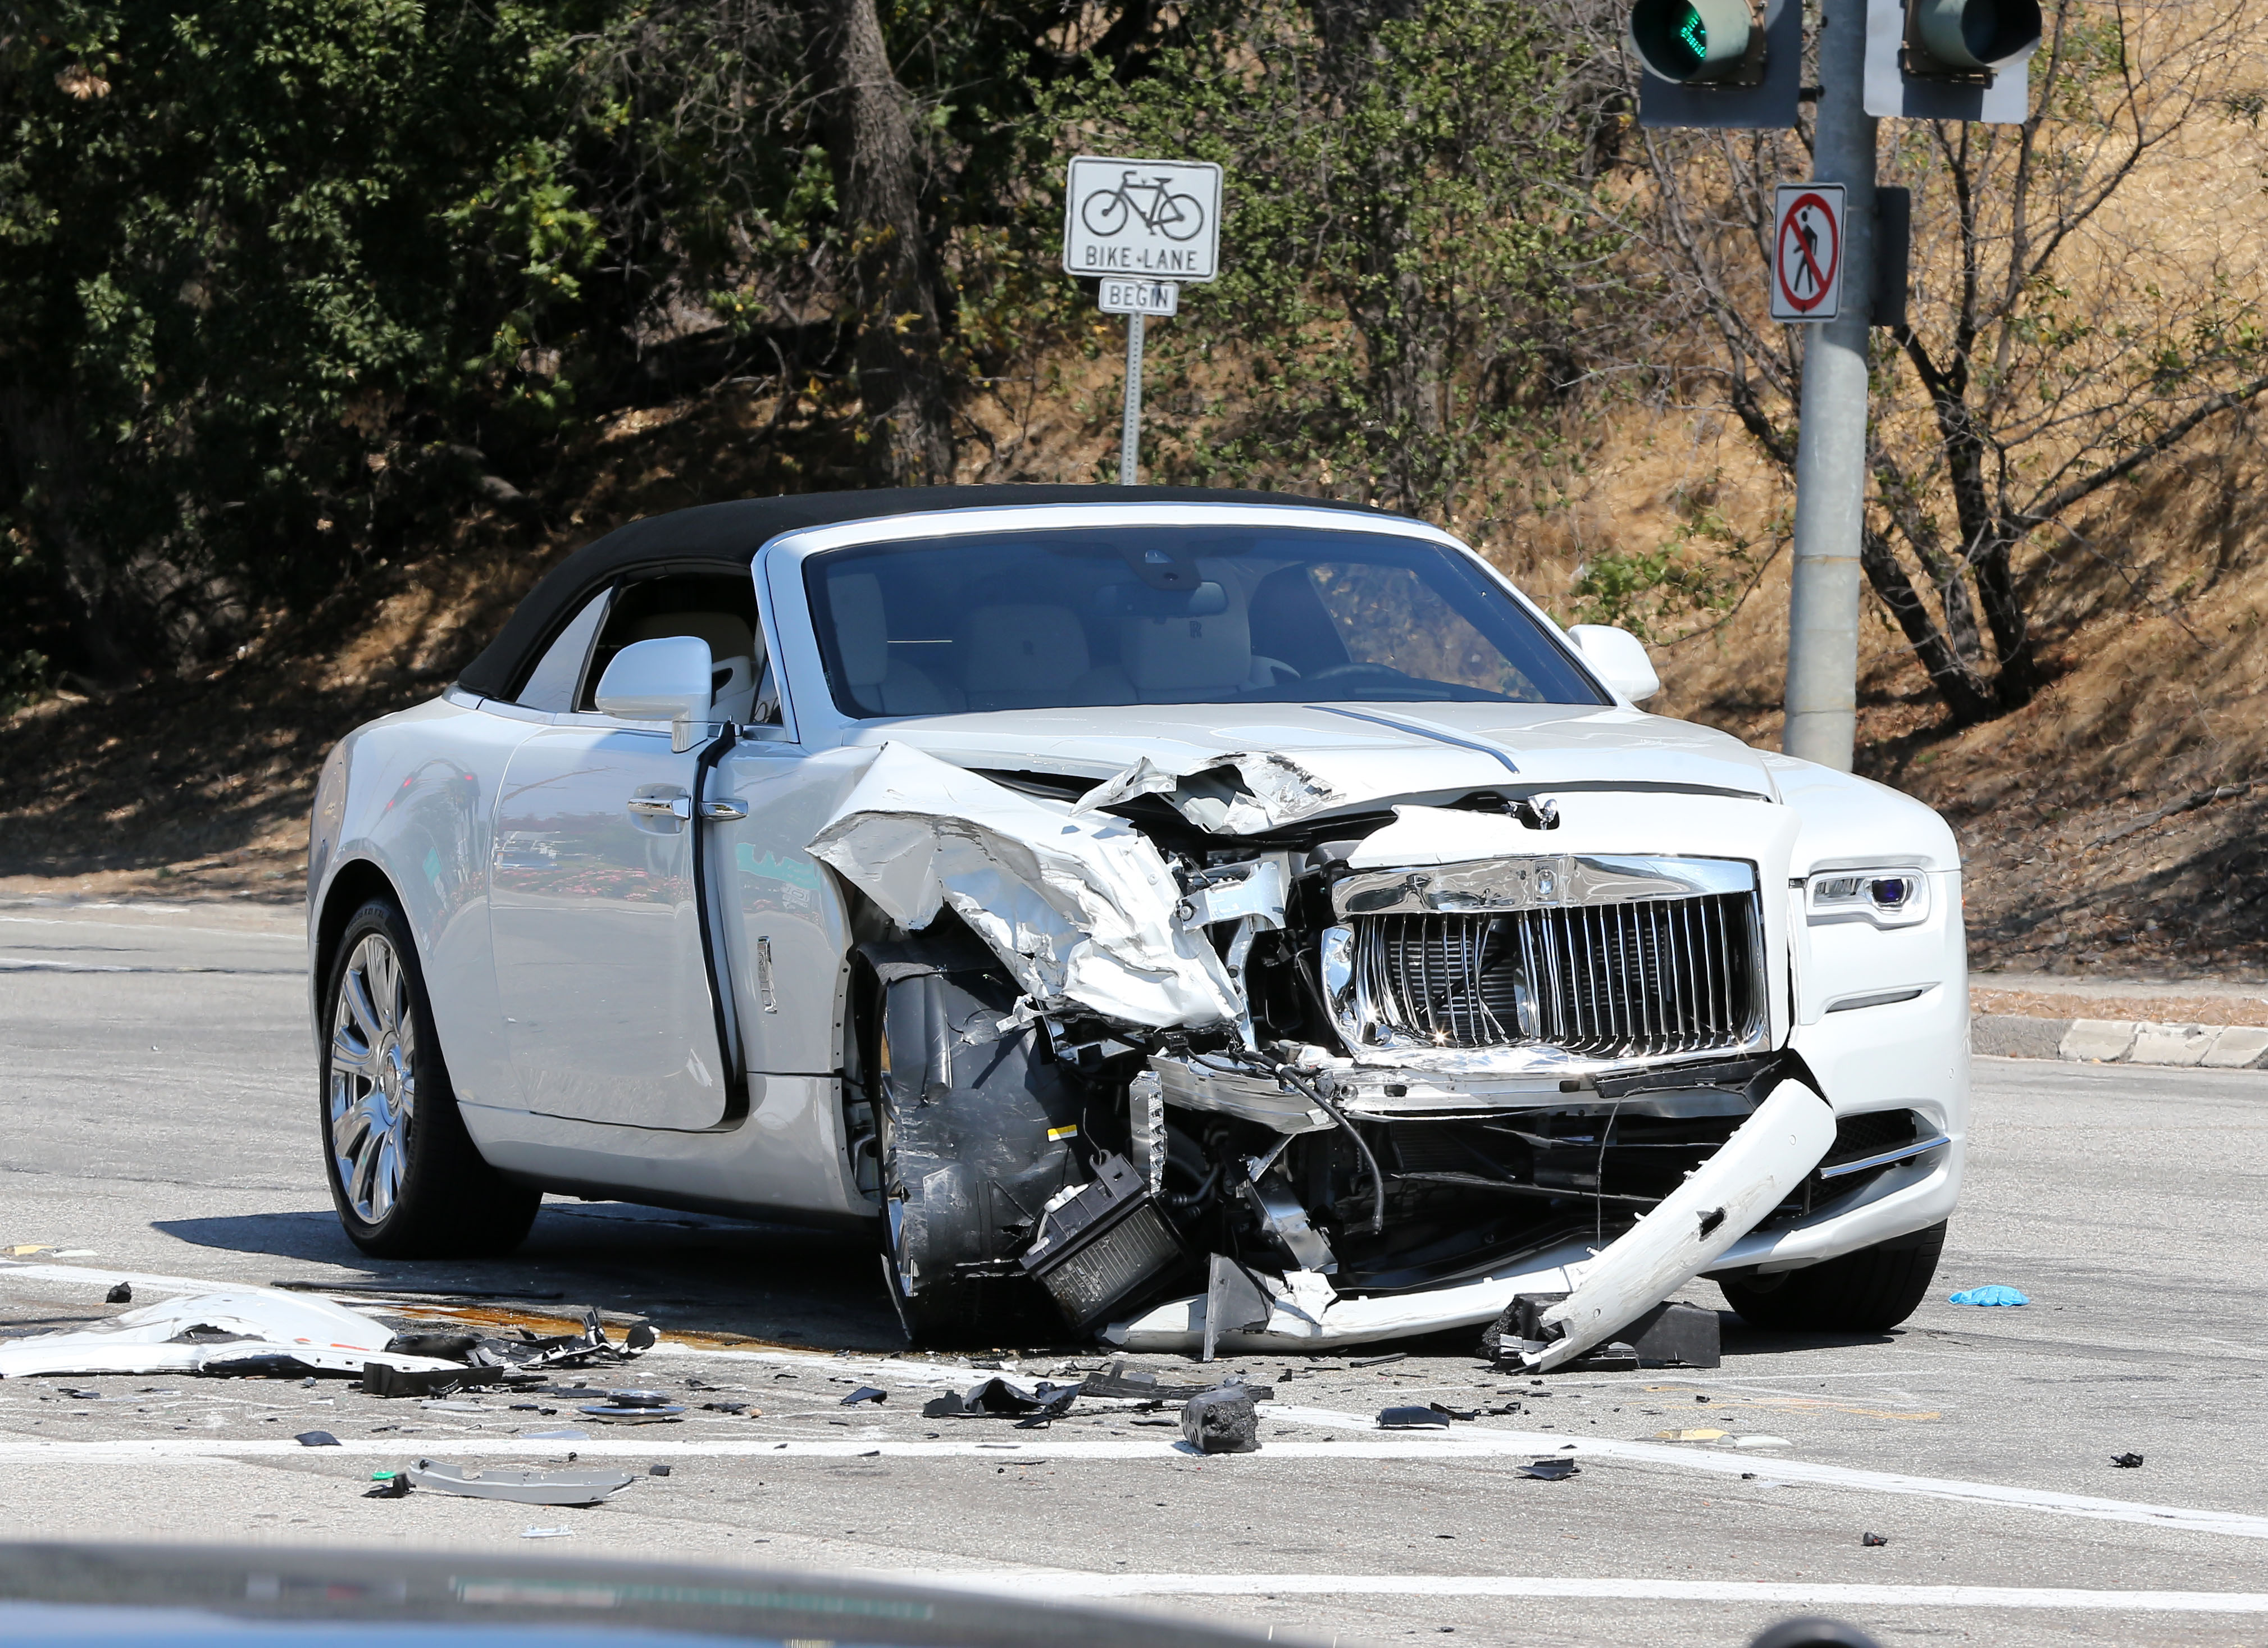 Kris Jenner totals her Rolls Royce after one week